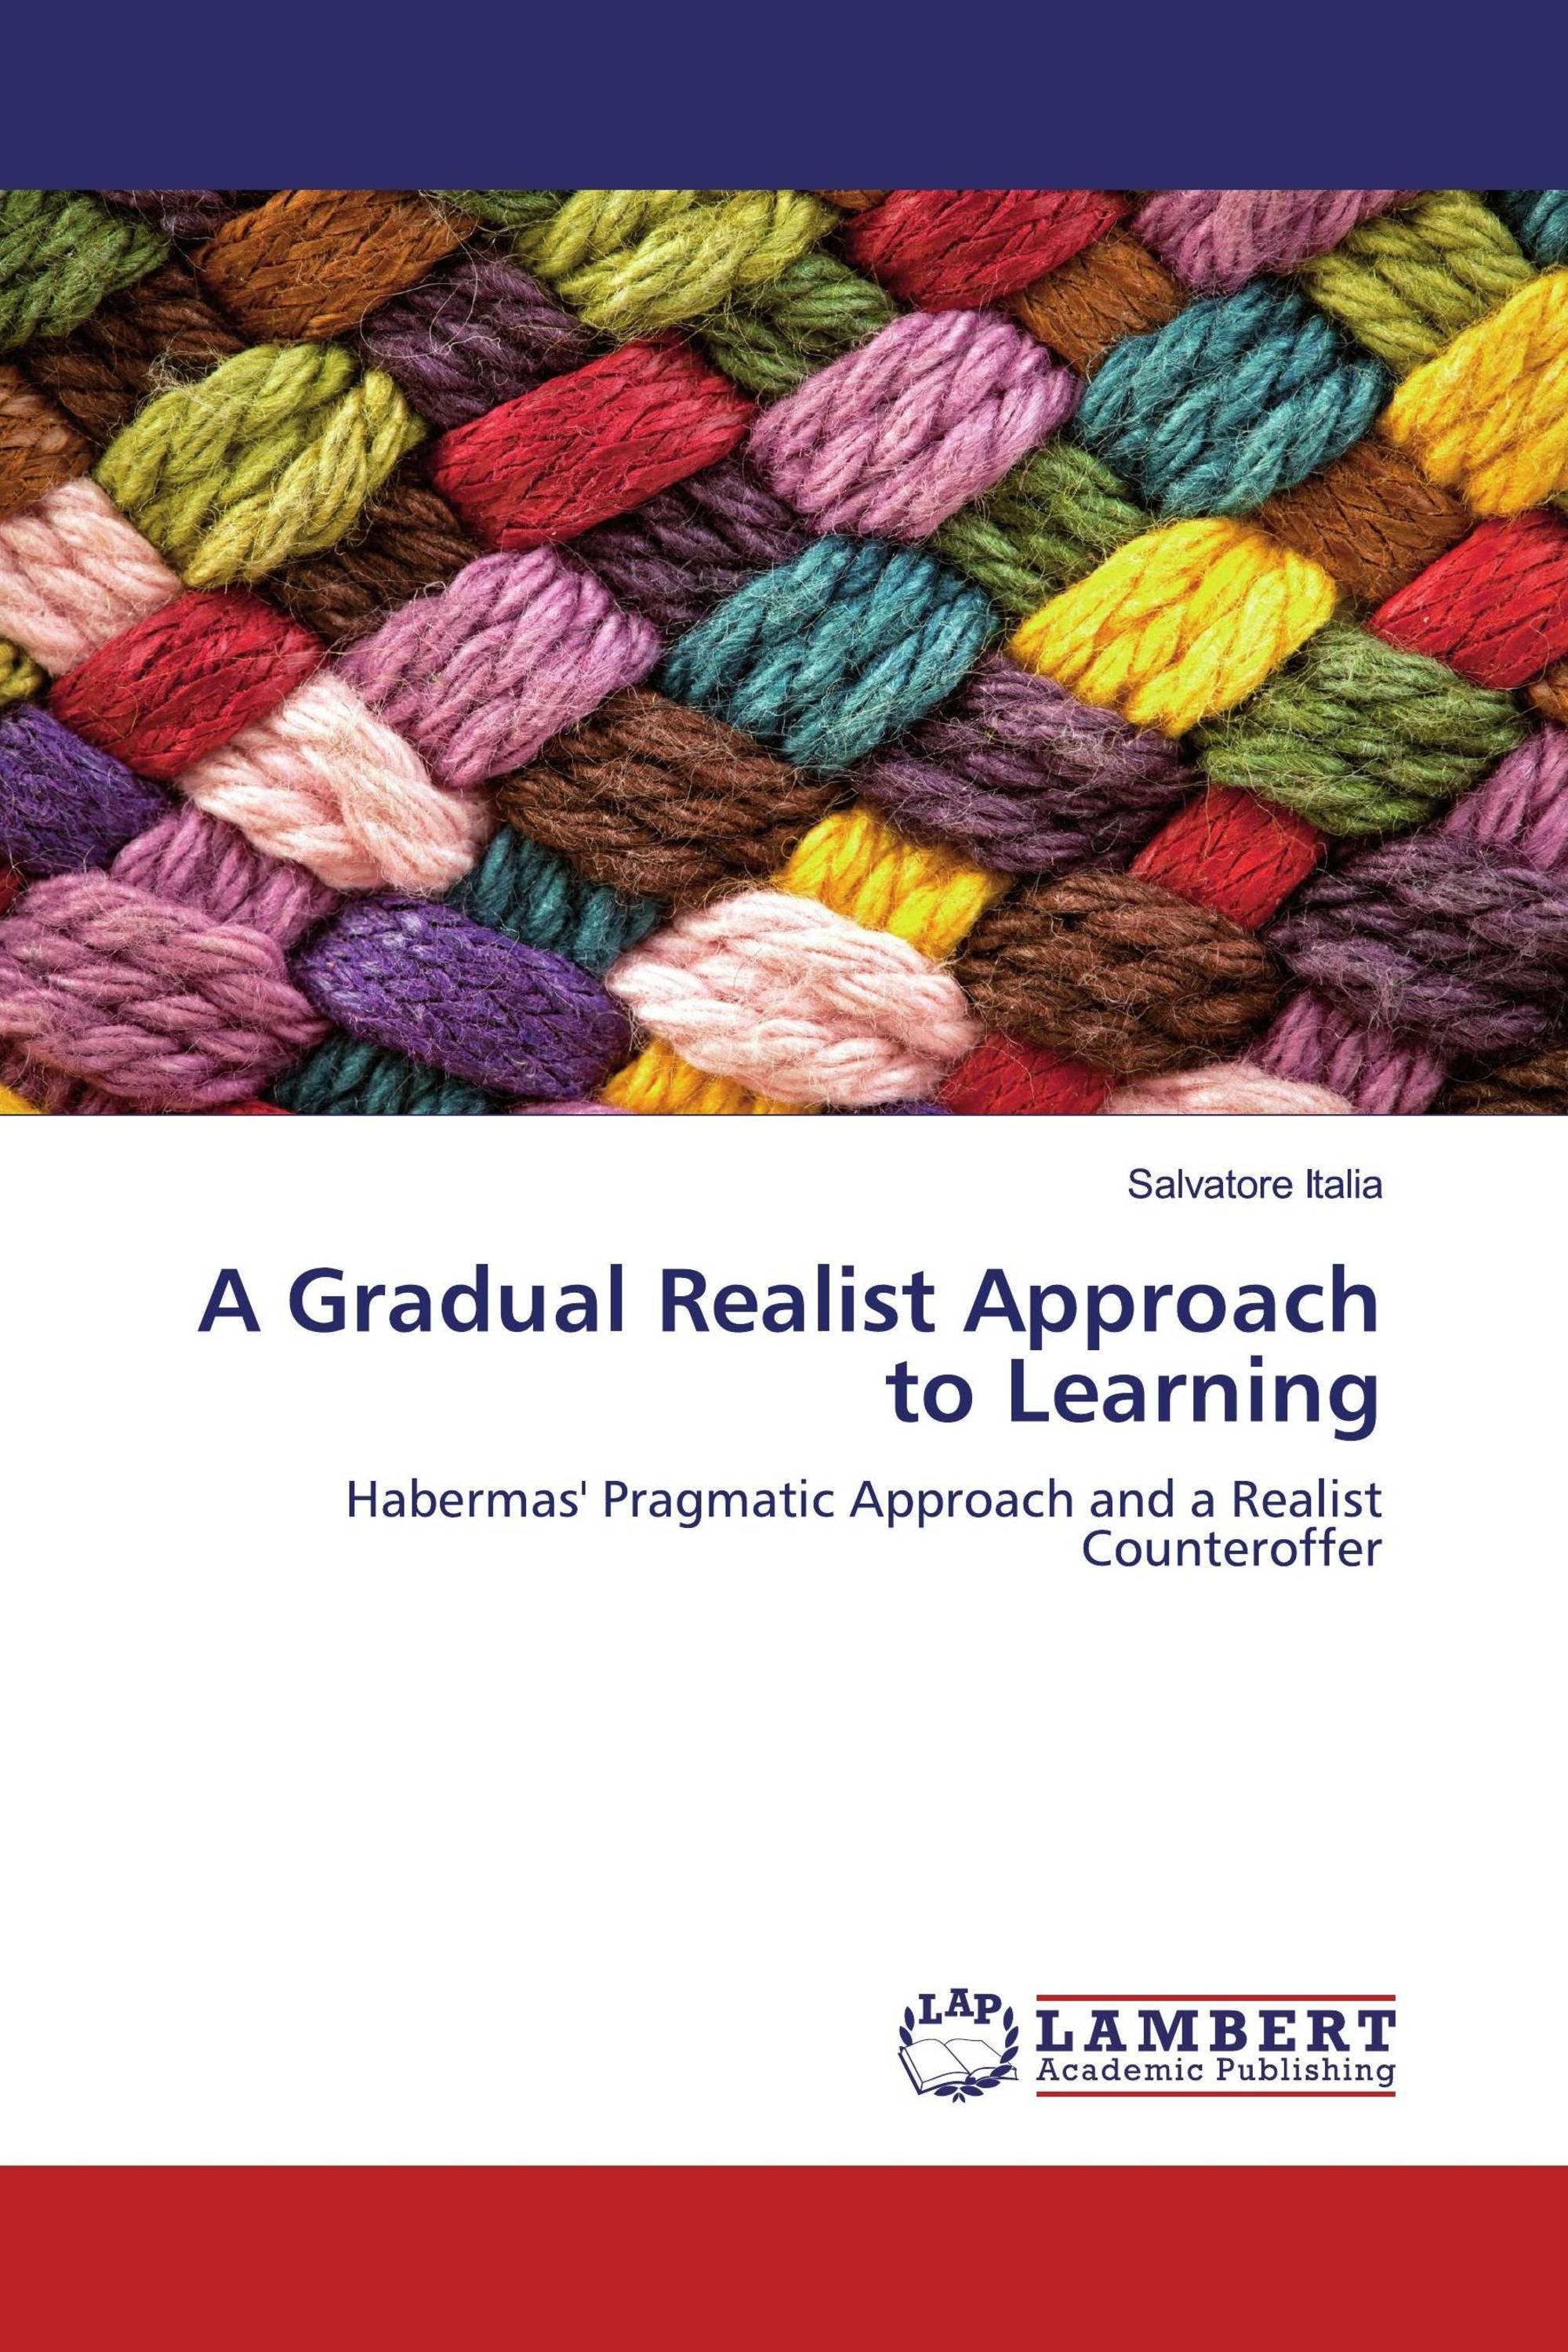 A Gradual Realist Approach to Learning